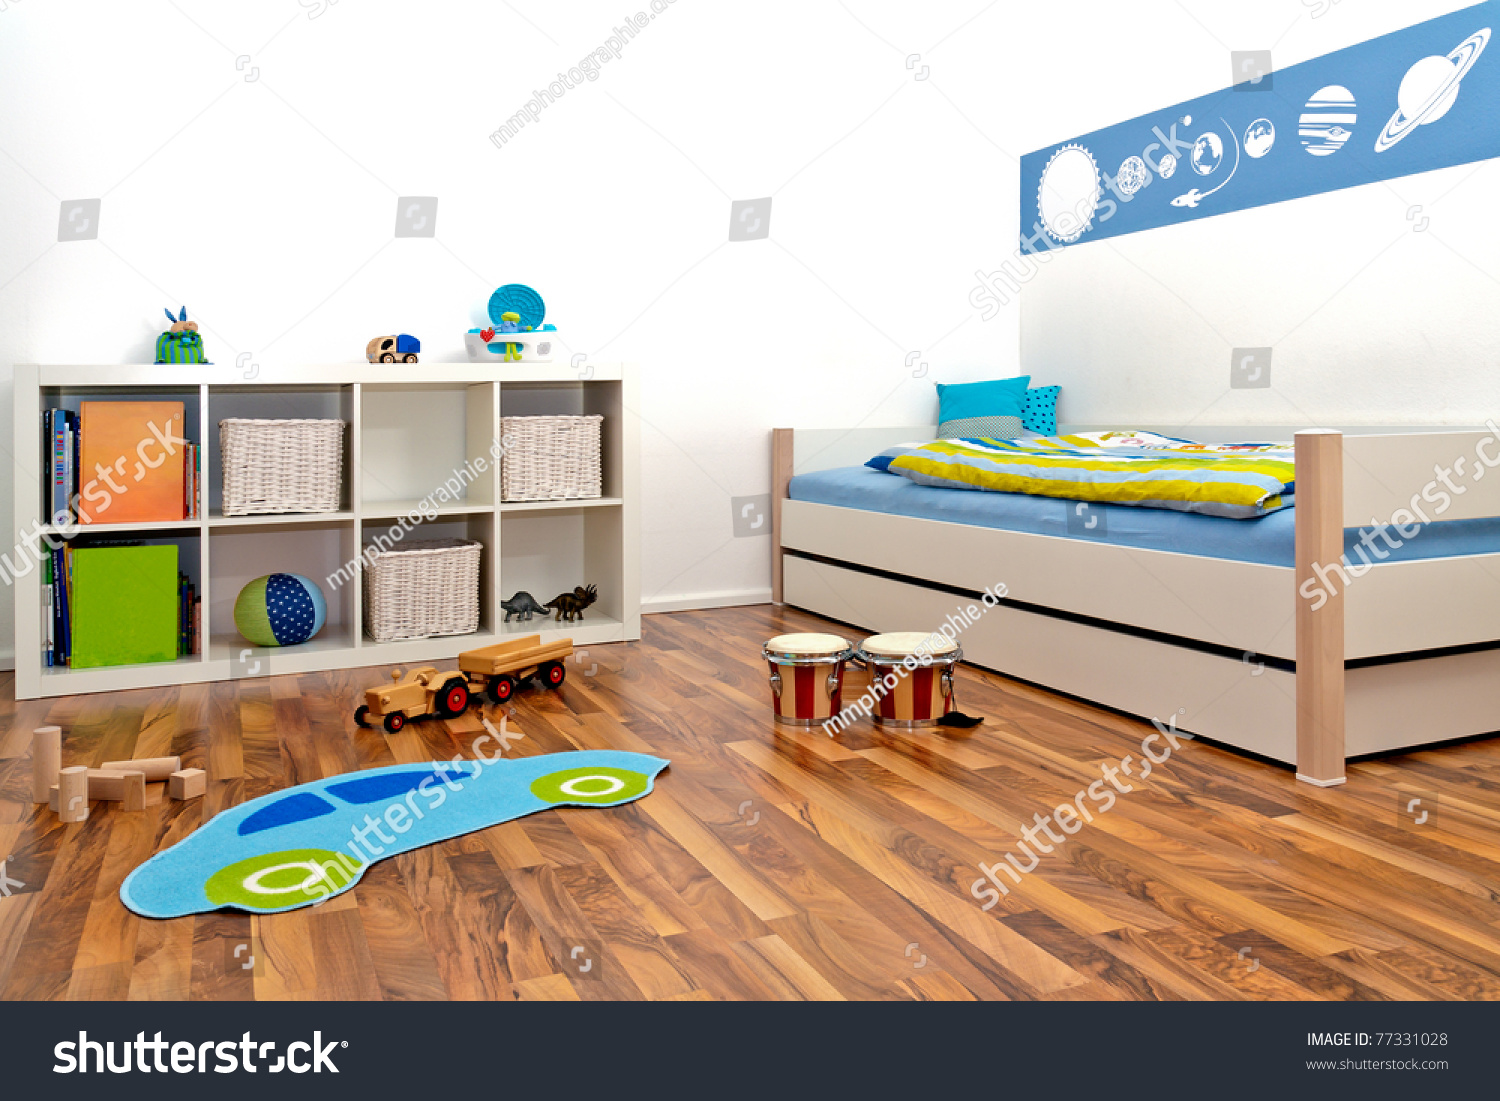 Stunning Playroom Bed Images Best Inspiration Home